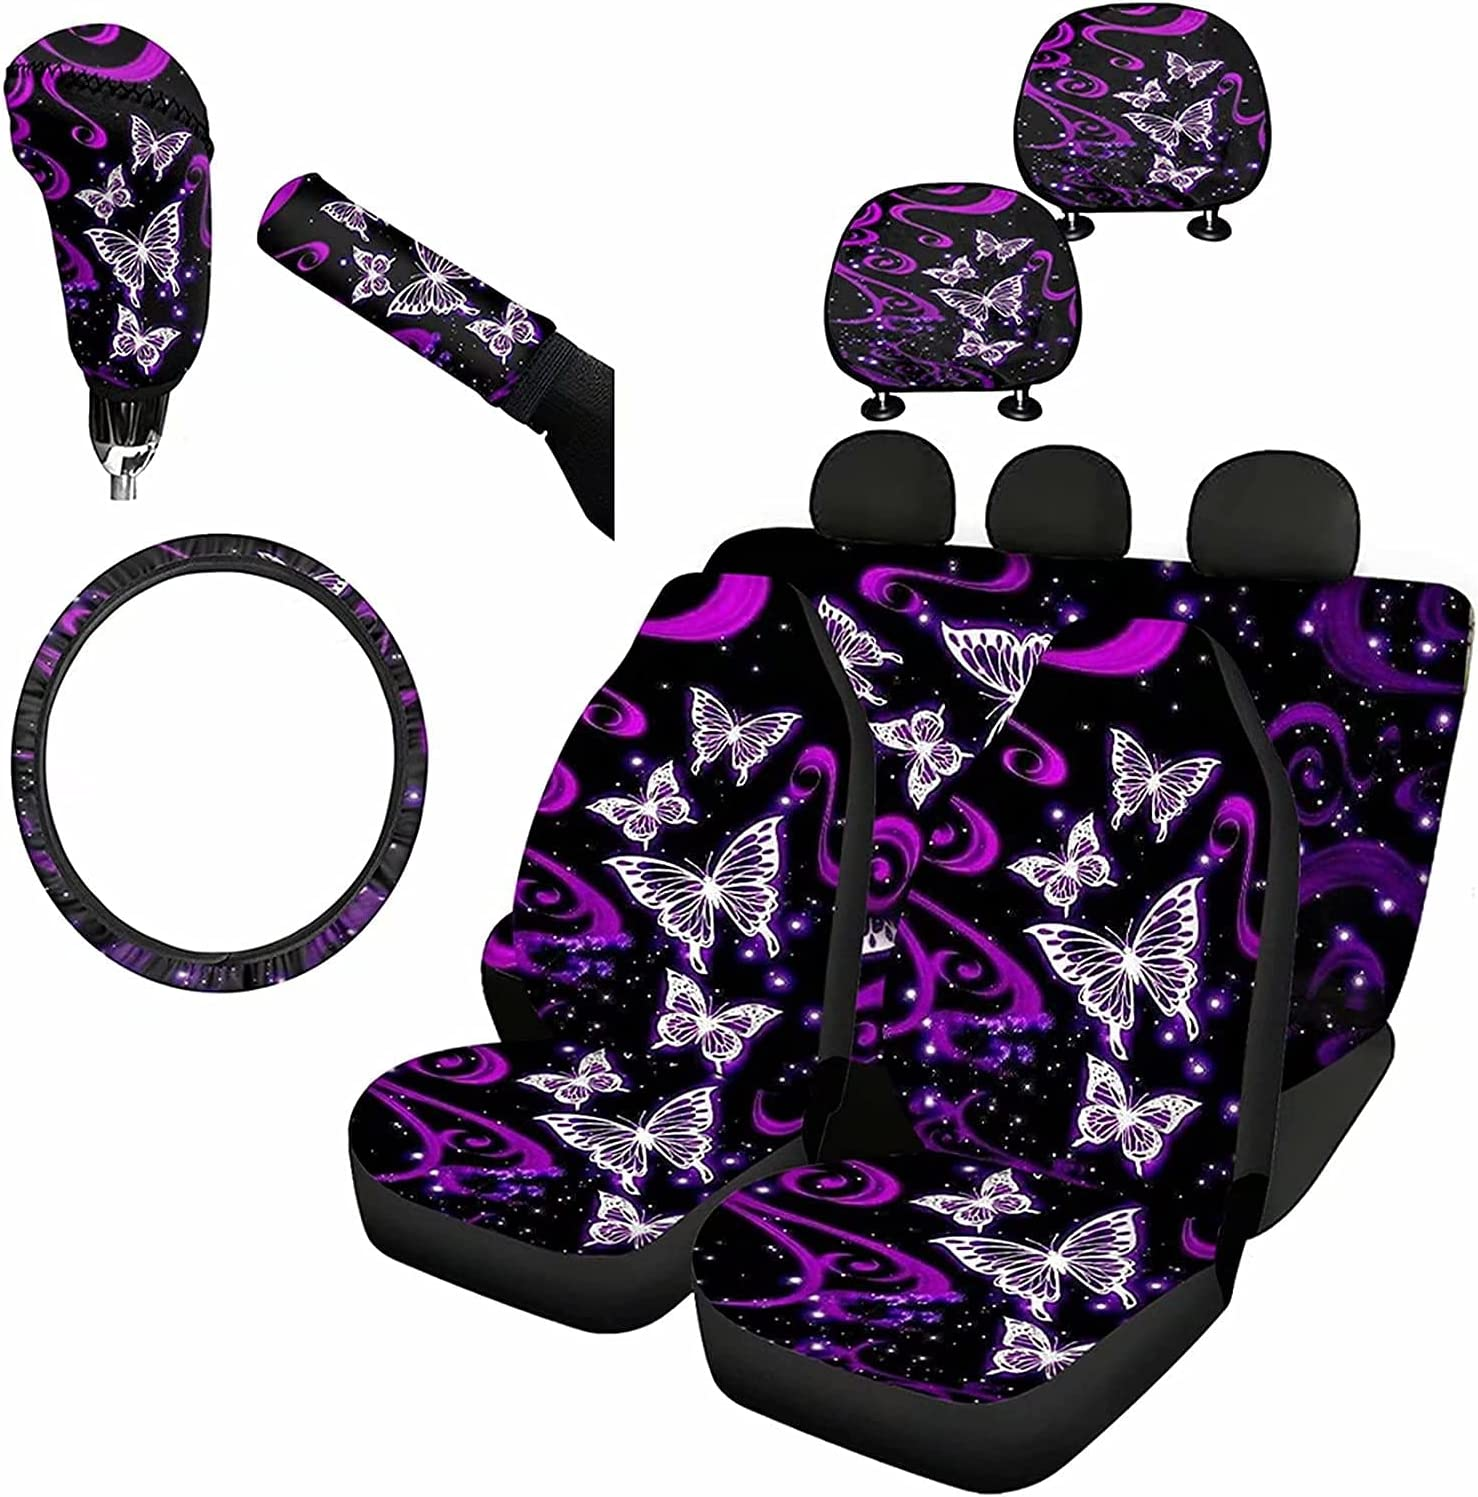 5 popular KUIFORTI Purple Butterfly Printed 9 Pcs Max 60% OFF Set Fron Car Covers Seat